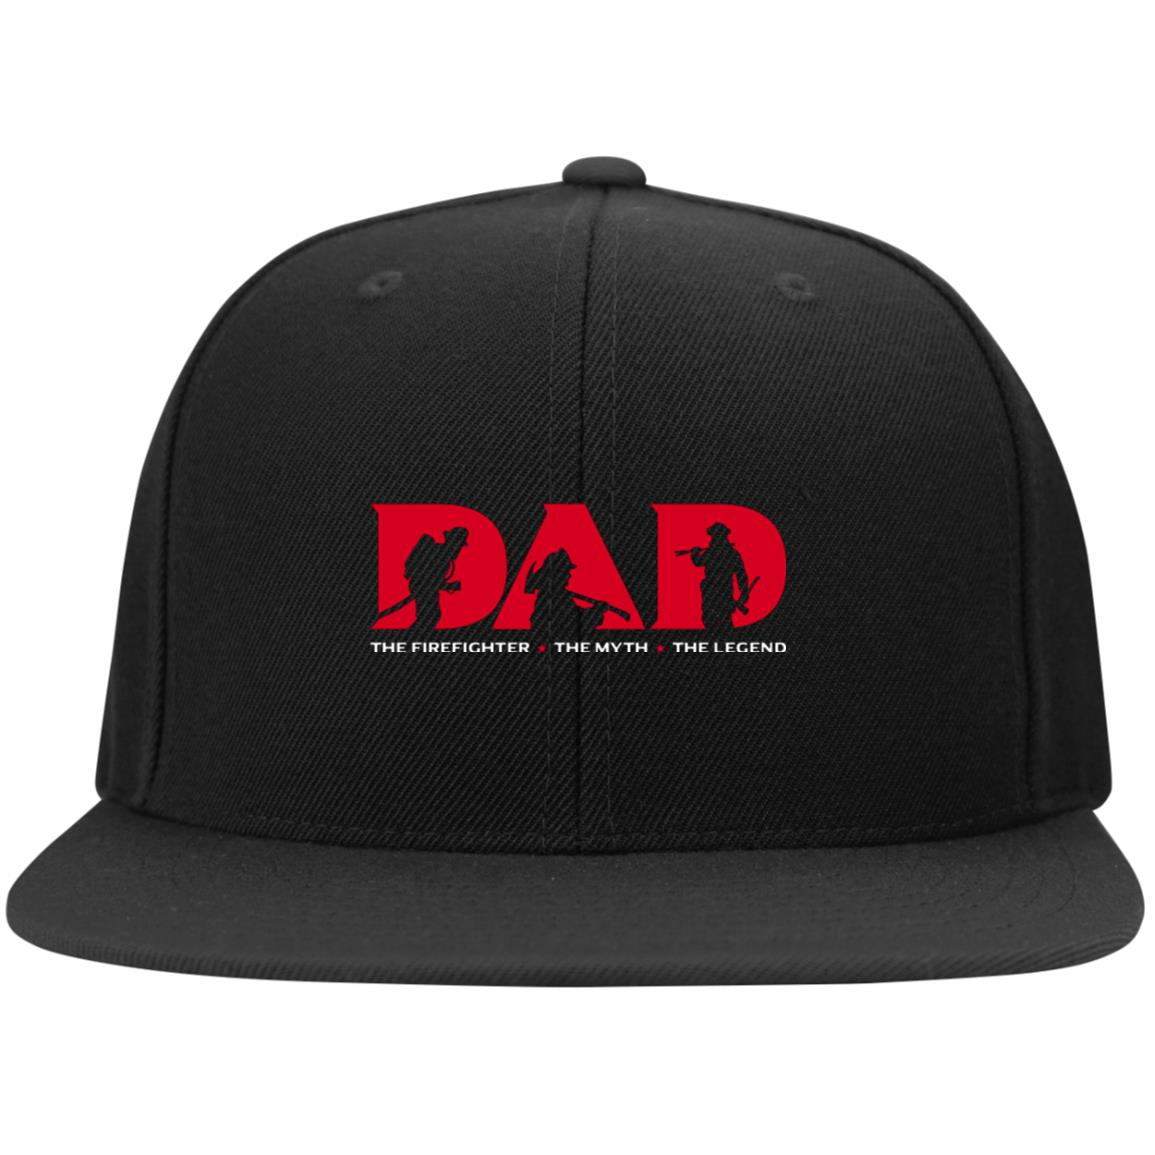 e683062d1ed Firefighter Dad Snapback Hat – KiwiLou